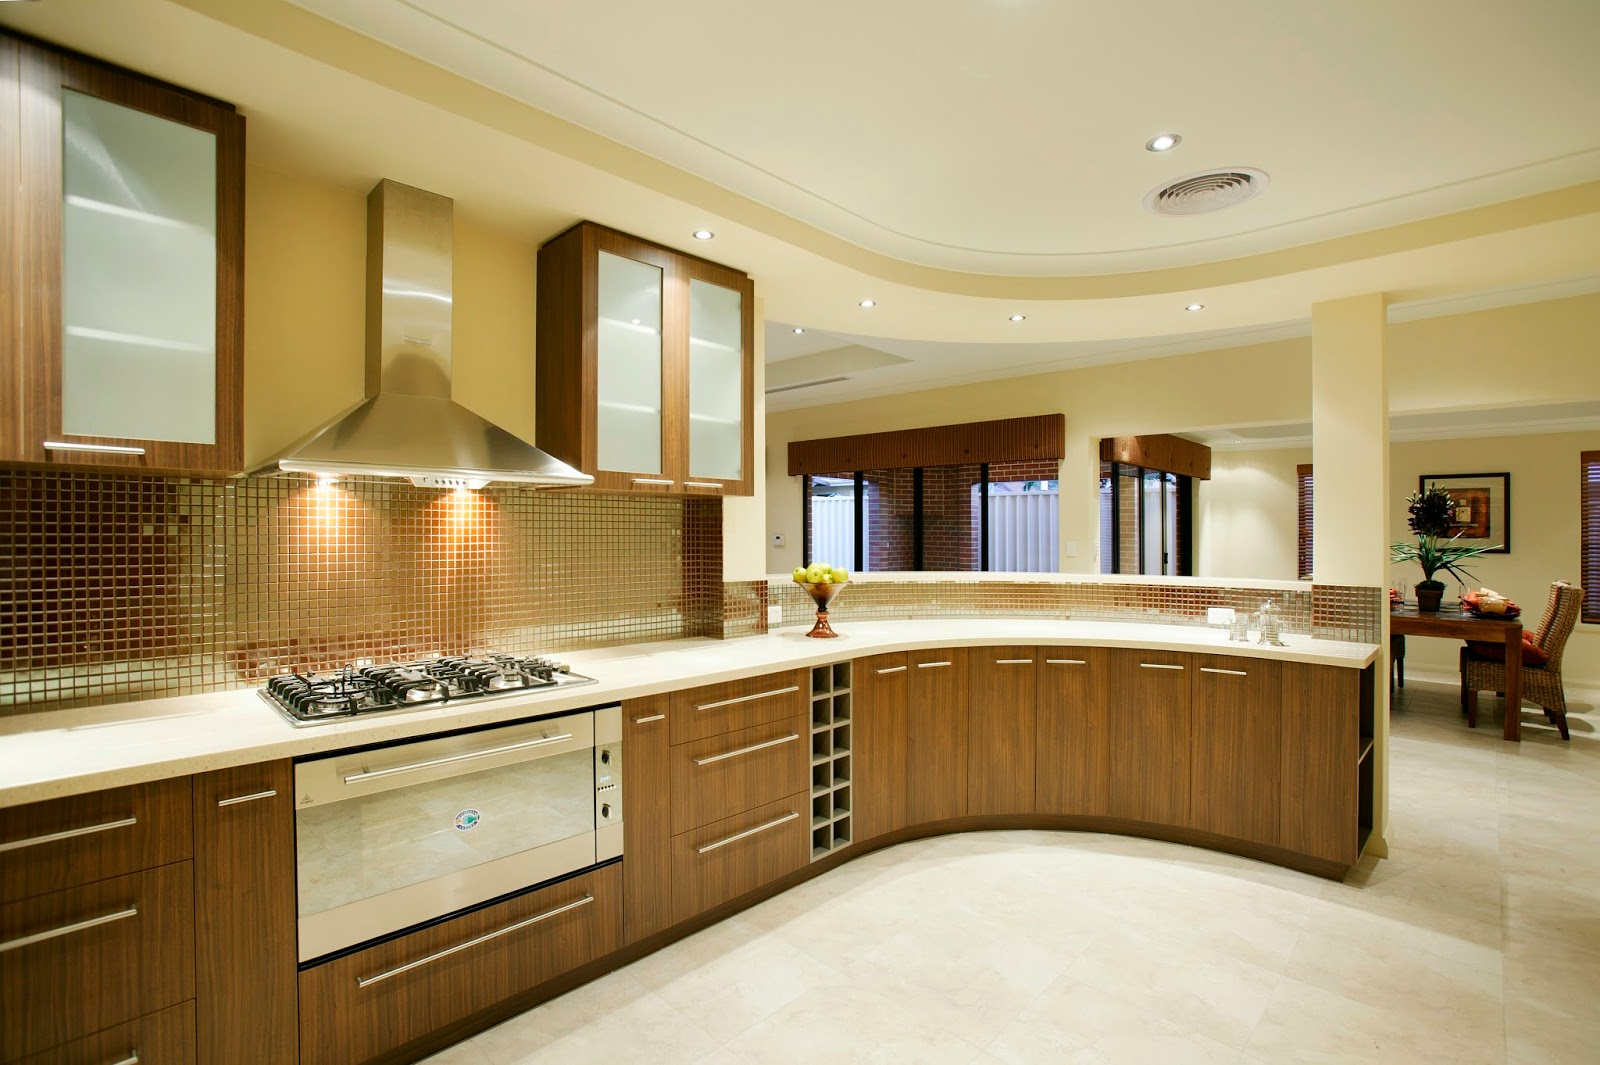 Interior Design   Kitchen Design Ideas